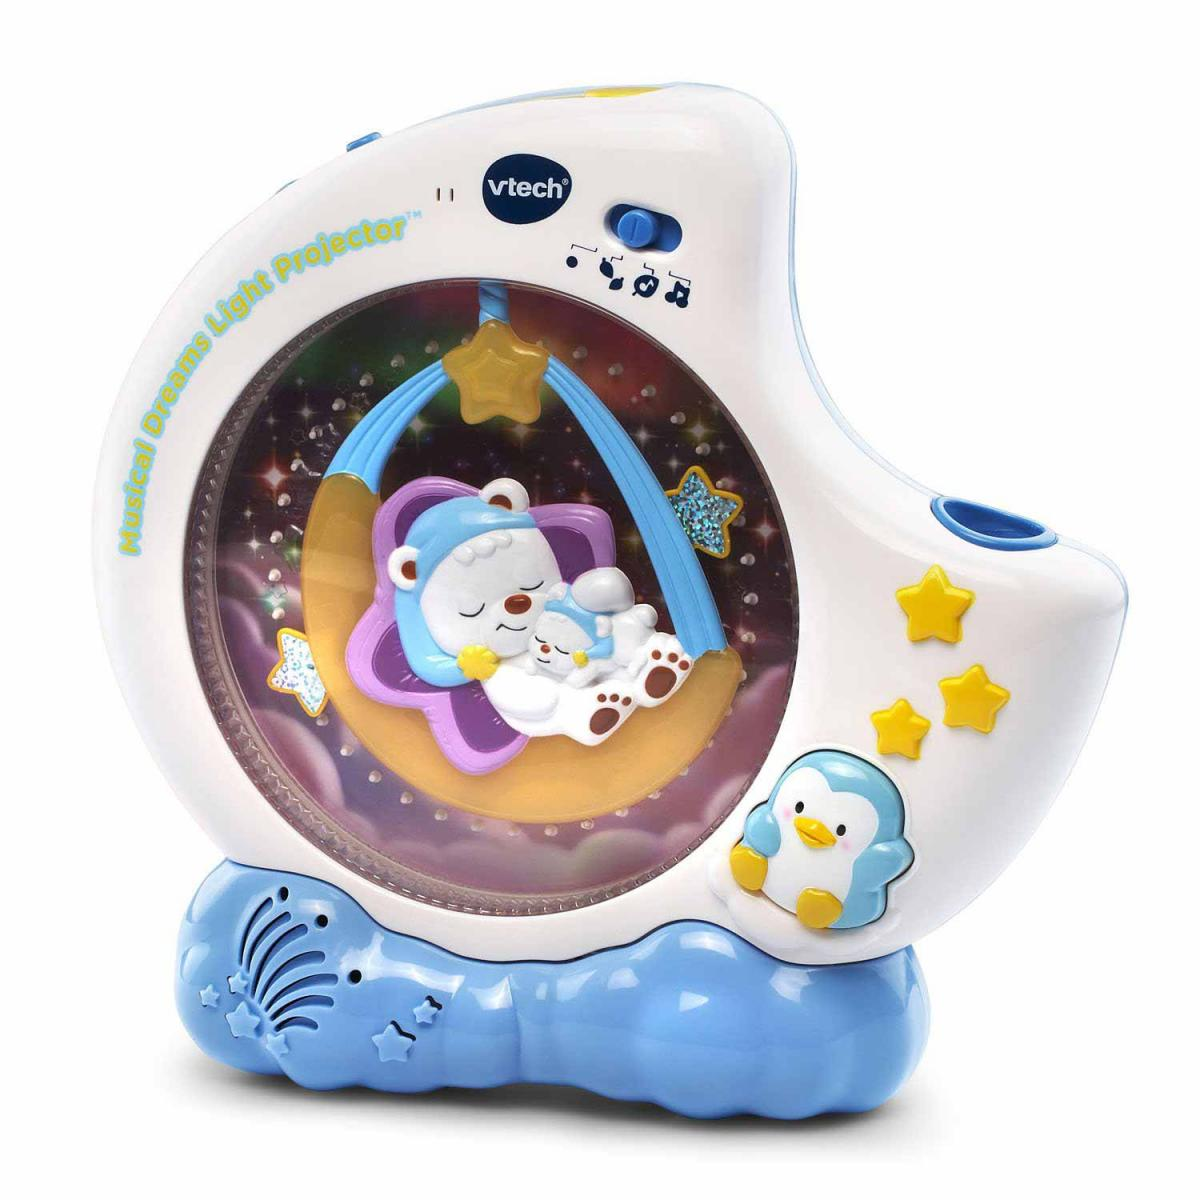 VTech Baby Musical Dream Light Projector